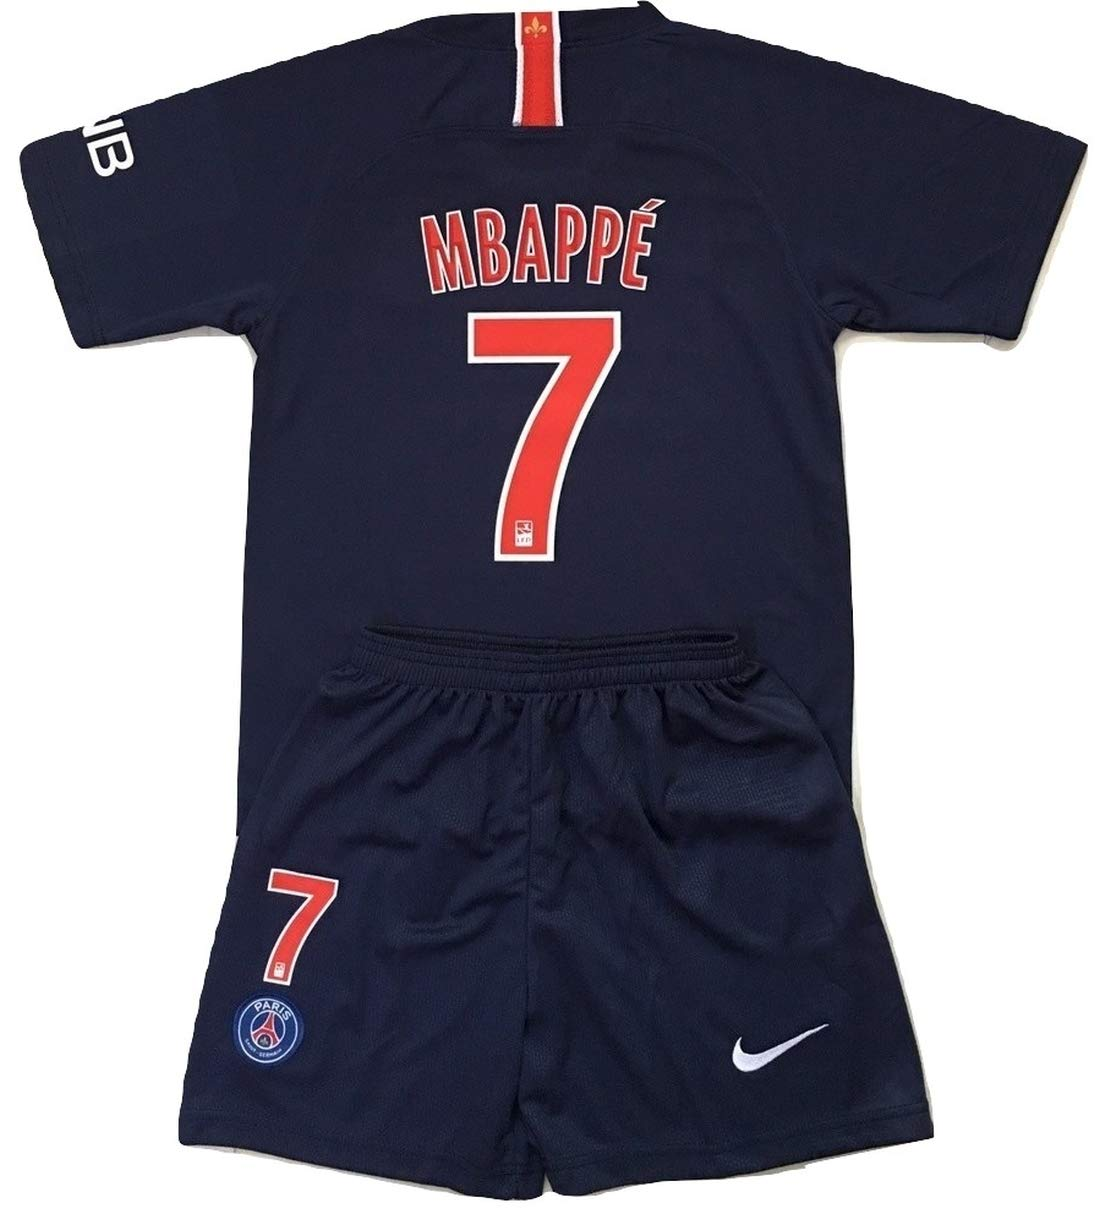 low priced 2c946 fdbc9 Amazon.com : Gadzhinski2017 Mbappe #7 PSG 2018-2019 Kids ...